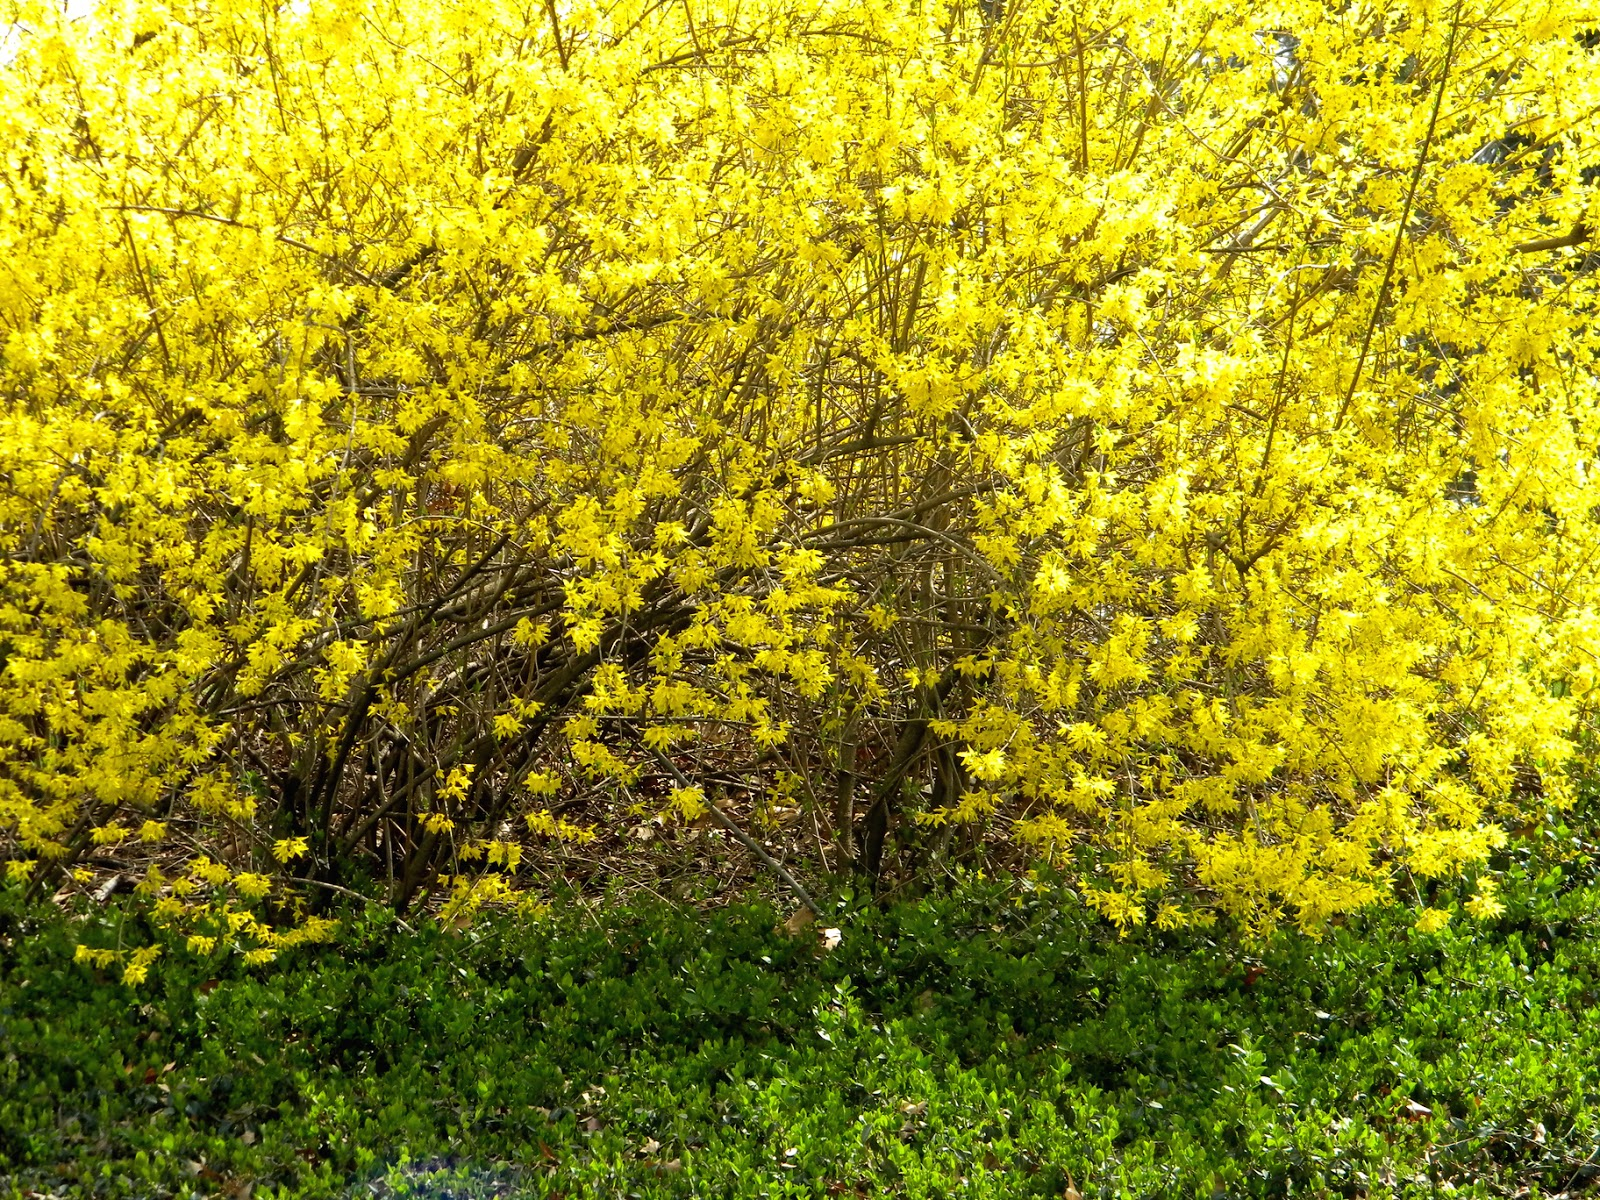 Forsythia Bethesda Fountain Strawberry Fields Central Park New York City